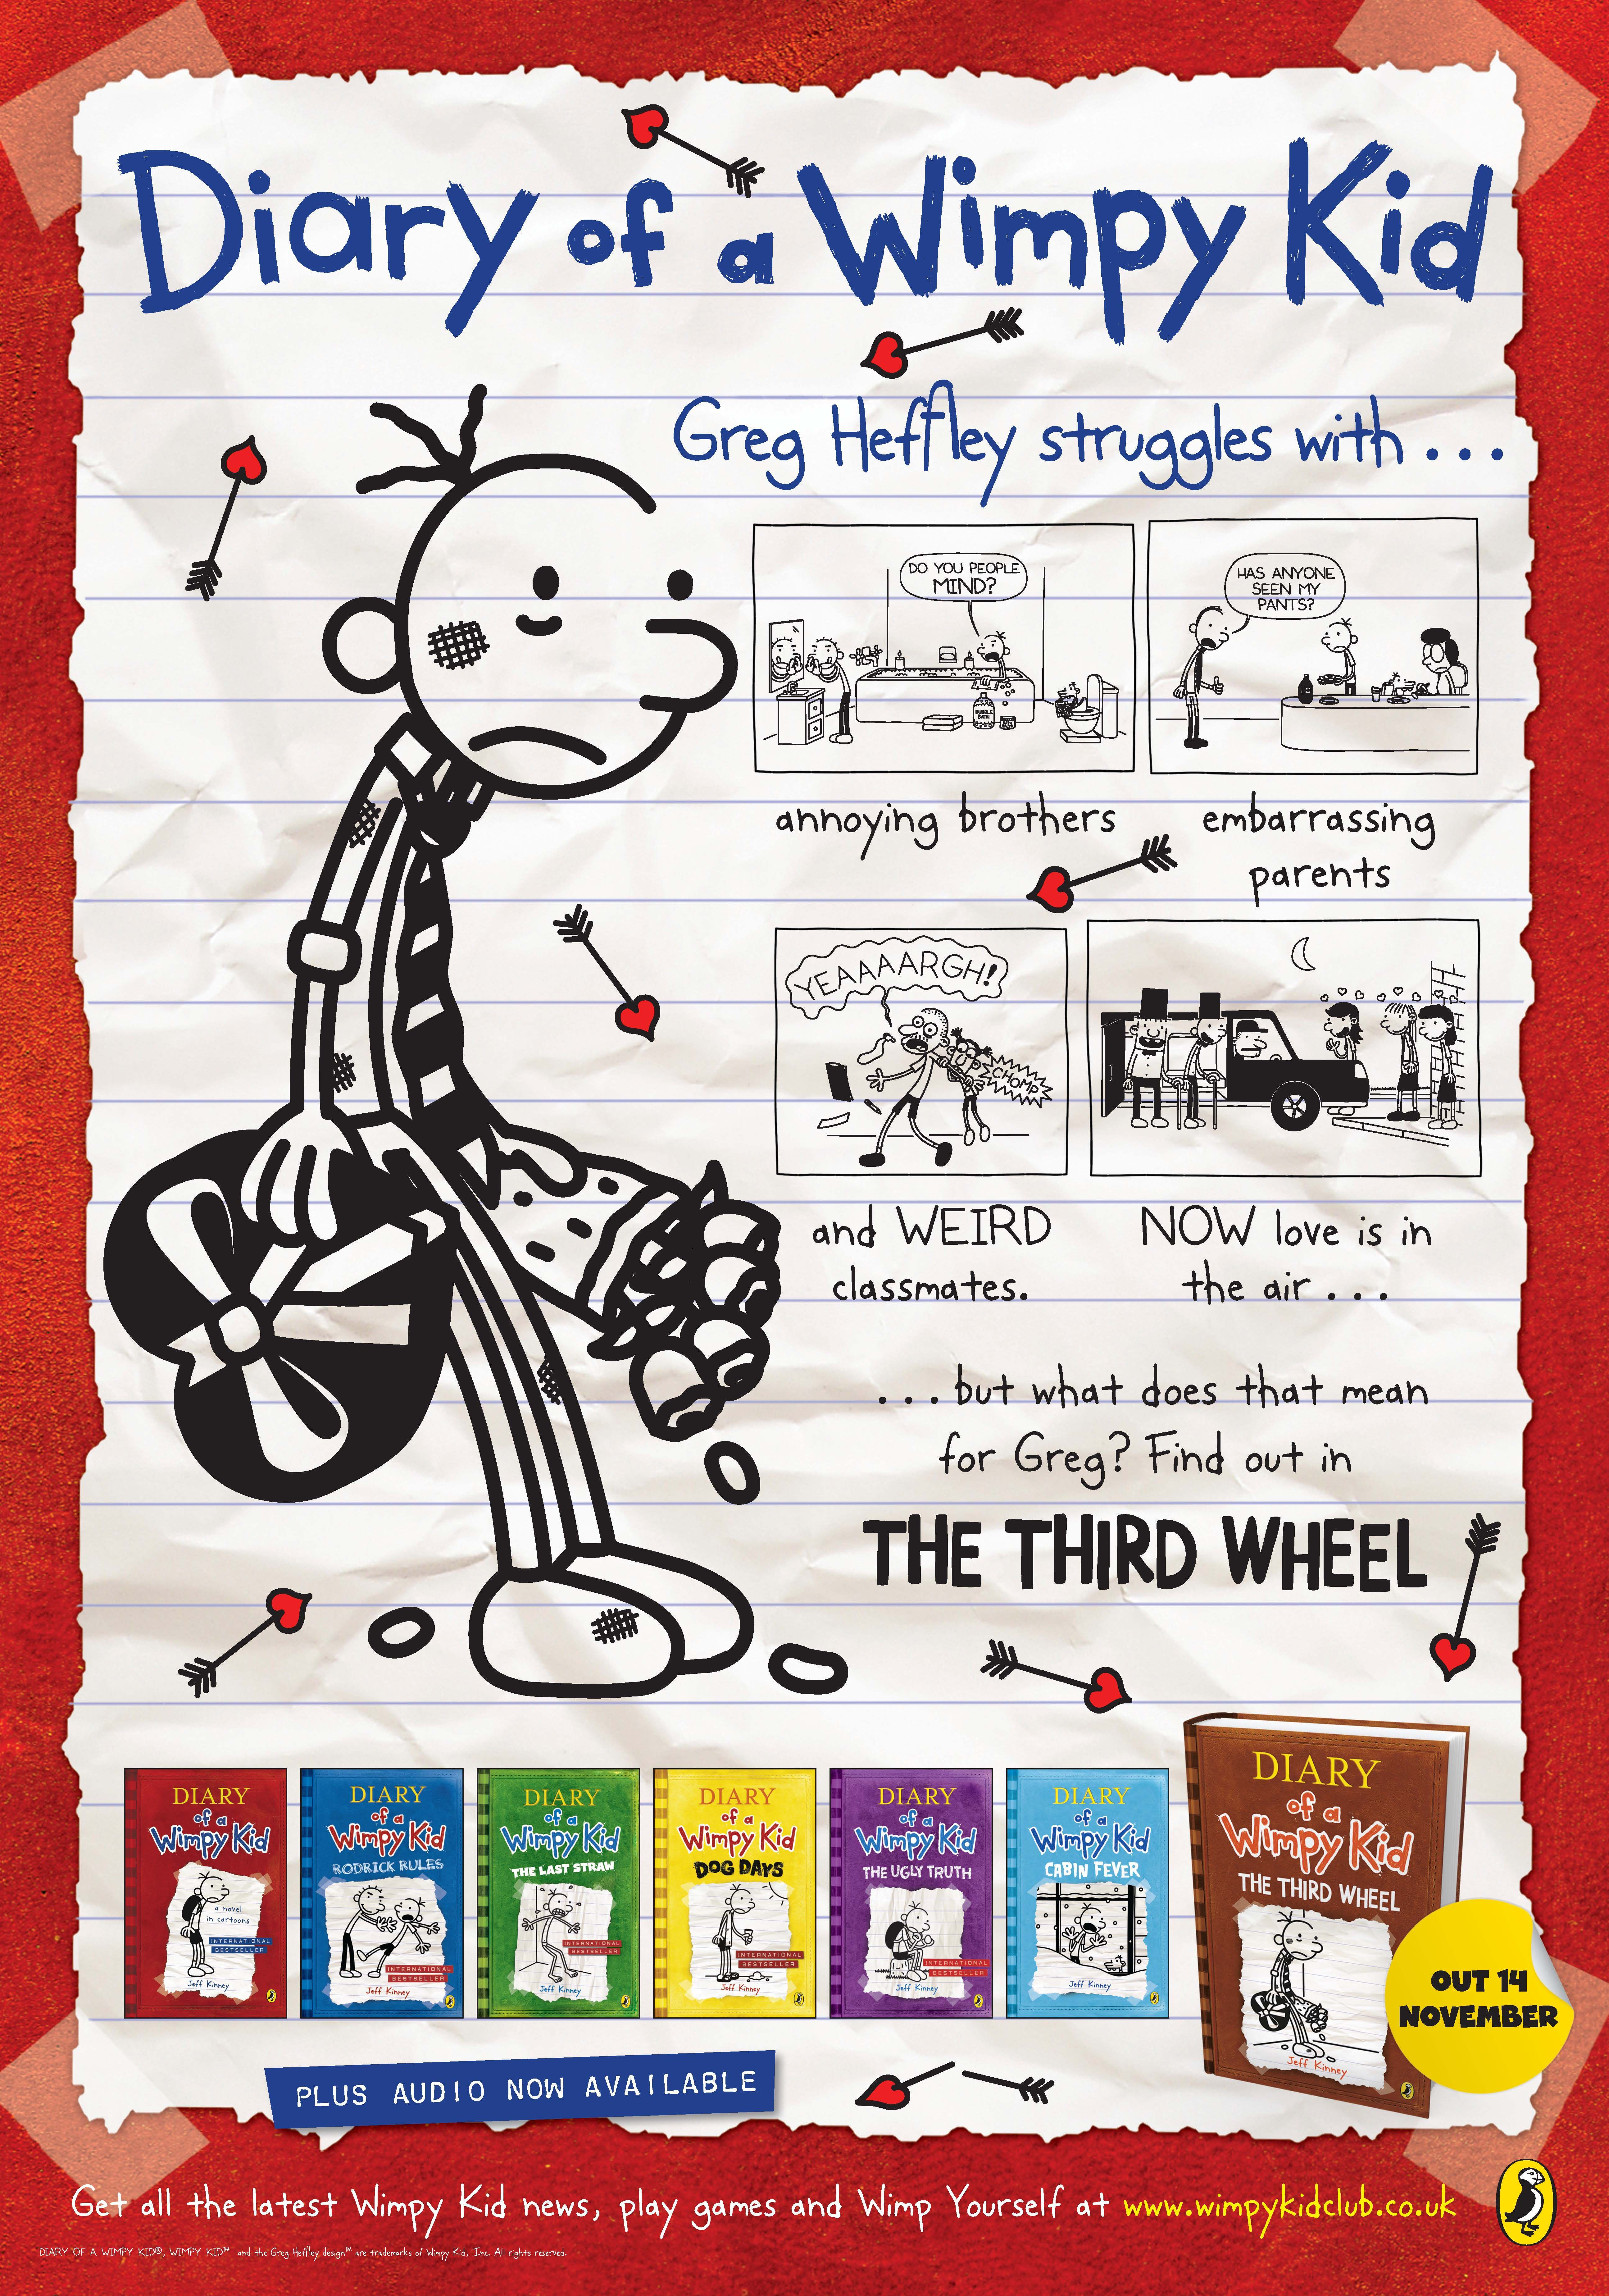 The third wheel diary of a wimpy kid book 7 jeff kinney paperback solutioingenieria Gallery